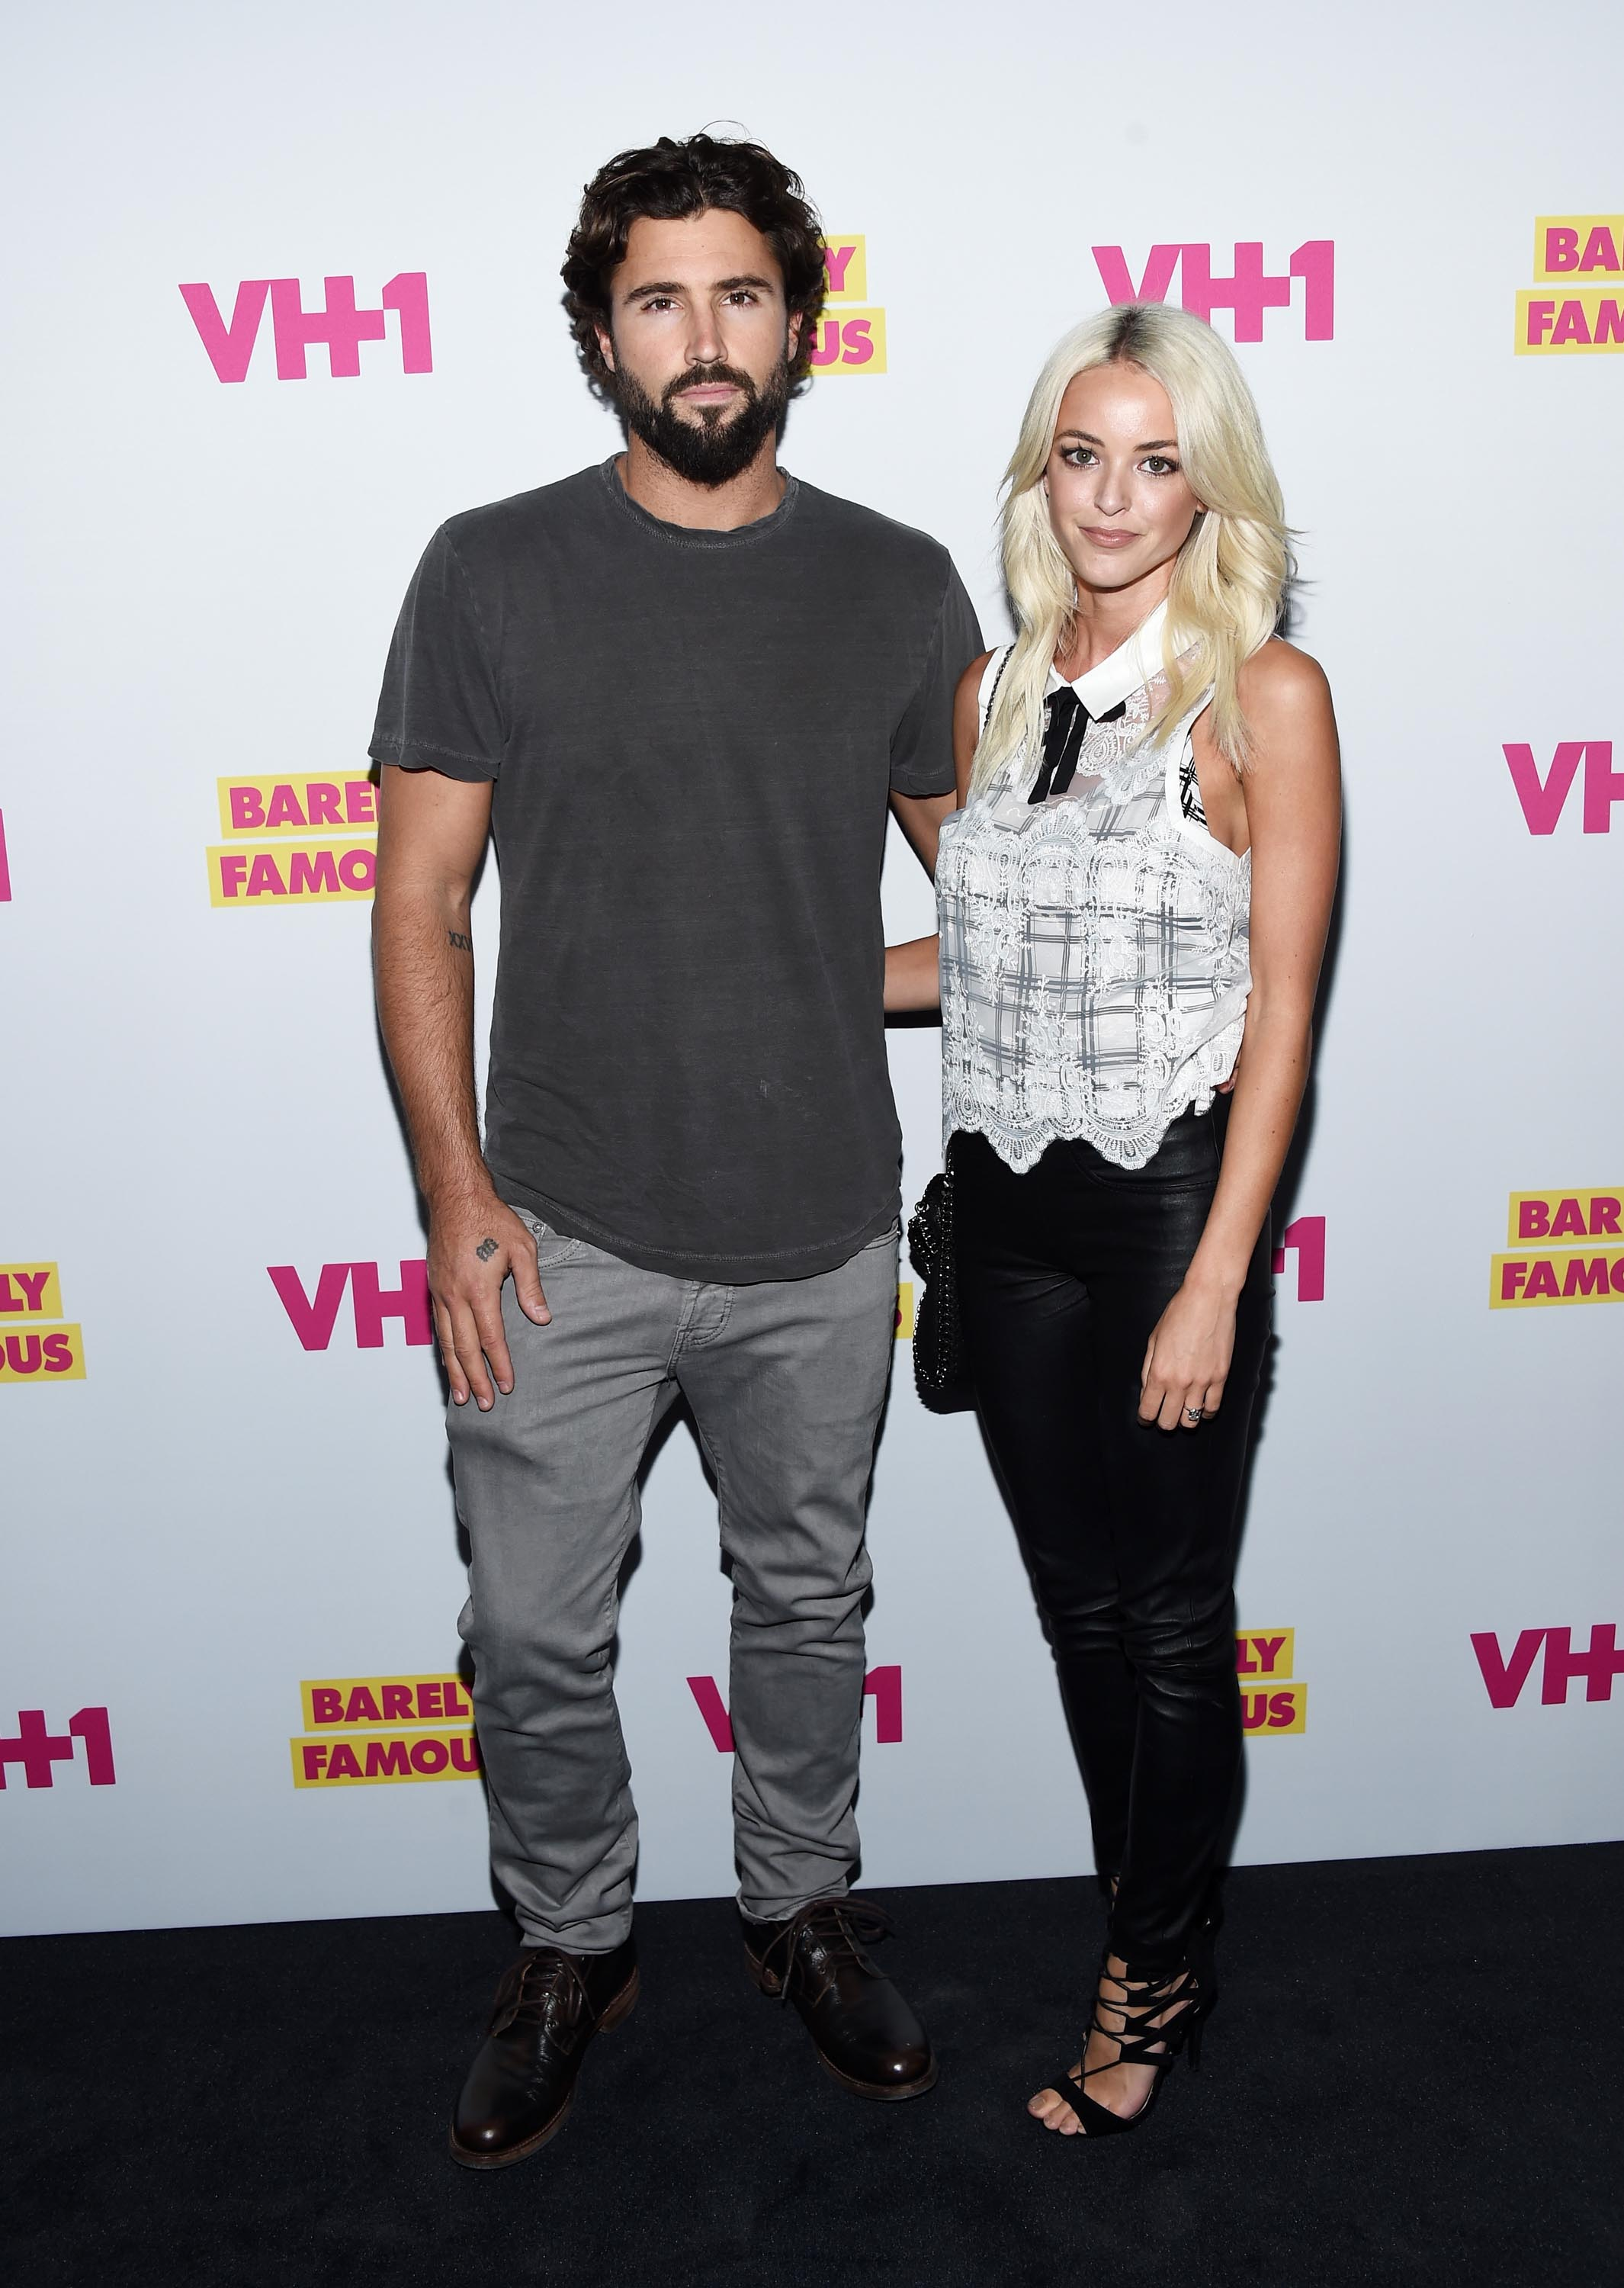 Kaitlynn Carter attend VH1's 'Barely Famous' Season 2 Party